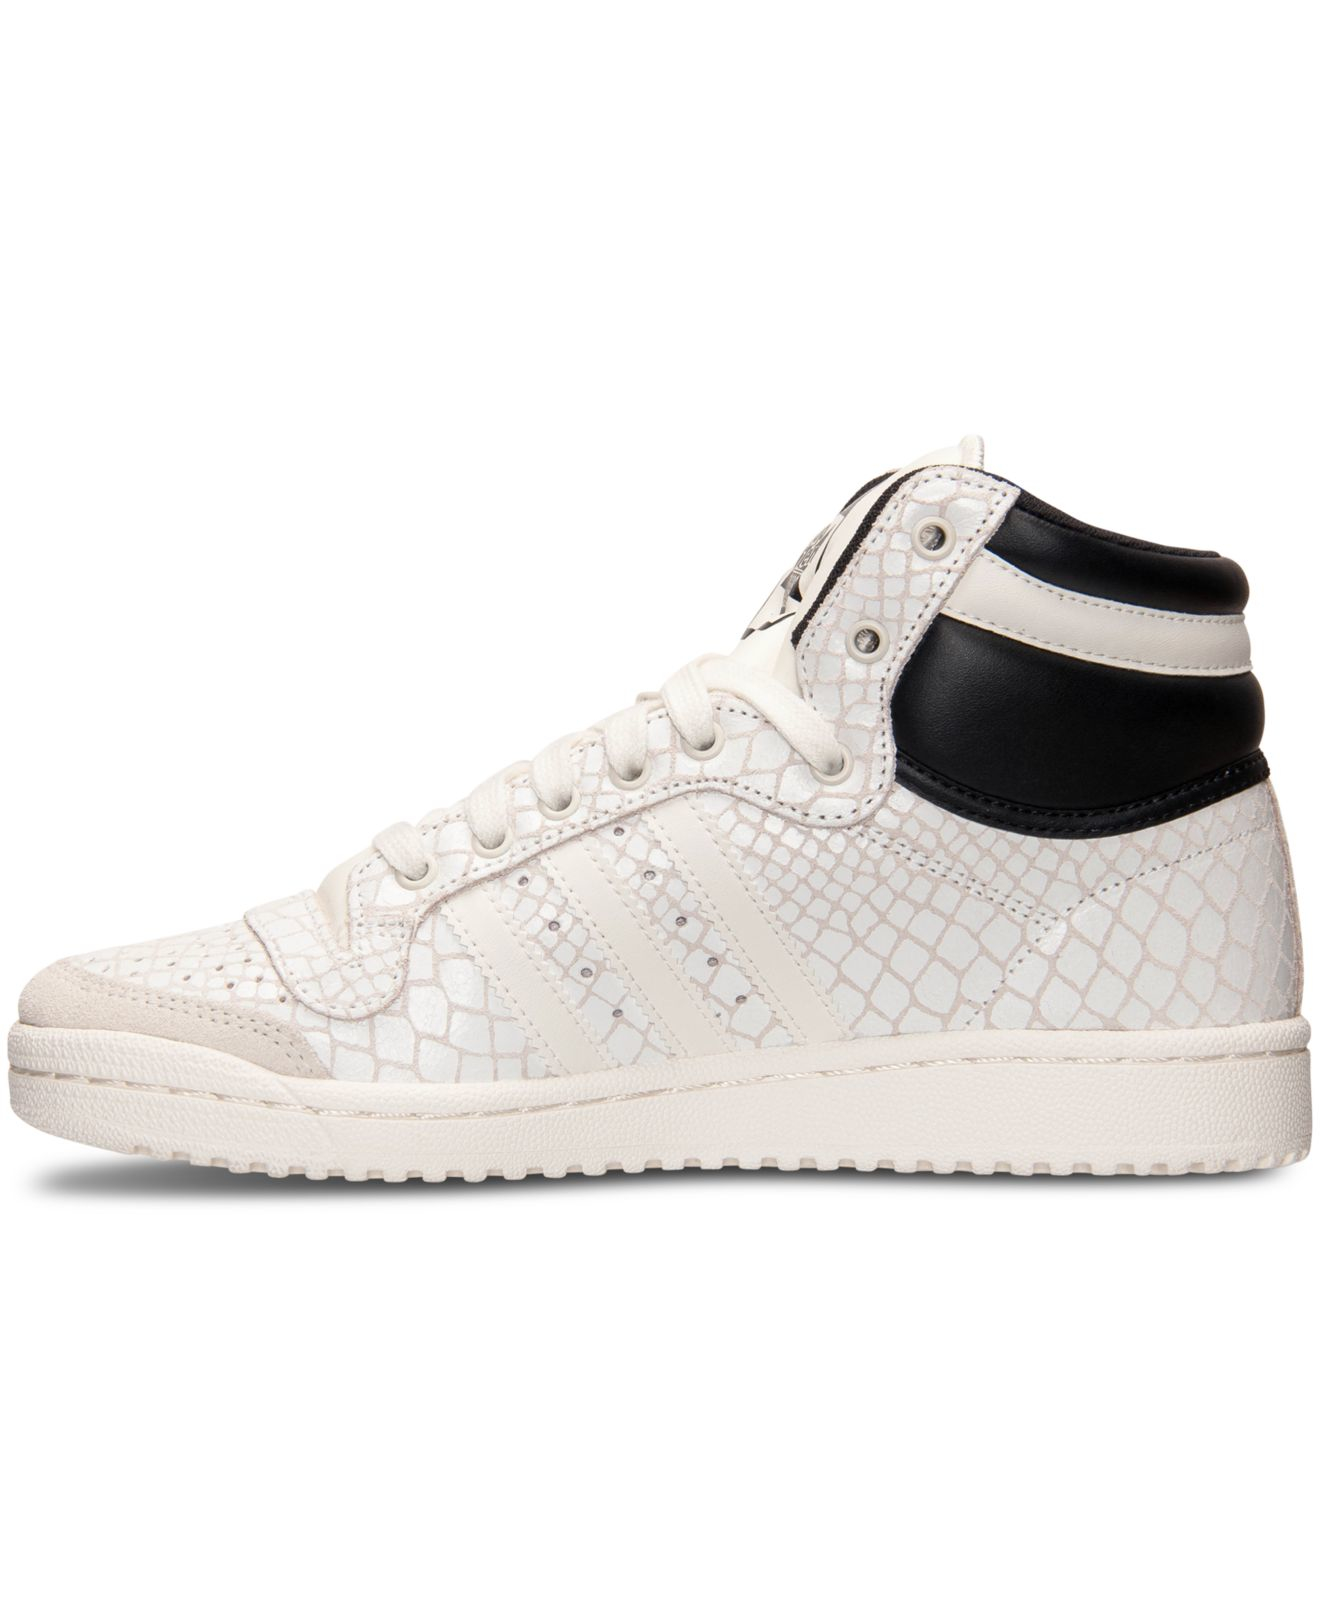 huge selection of c056c dd390 adidas Originals Women s Top Ten Hi Casual Sneakers From Finish Line in  White - Lyst